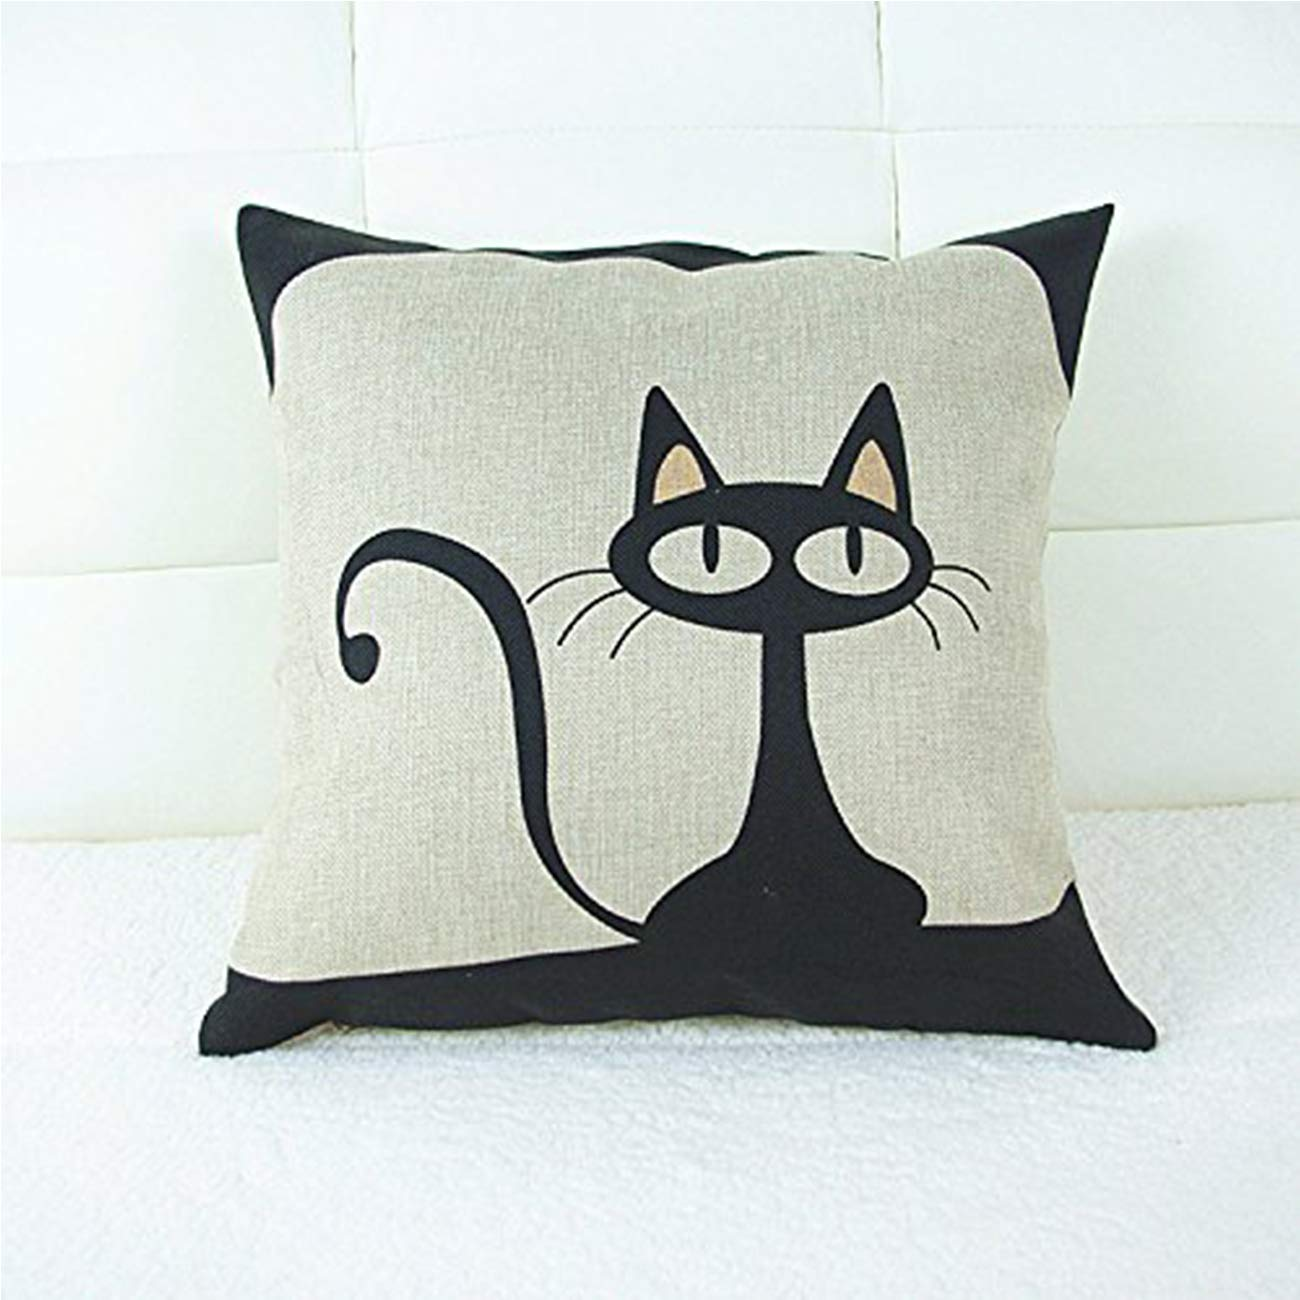 Black Cat Pillow Cover $1.79 +...